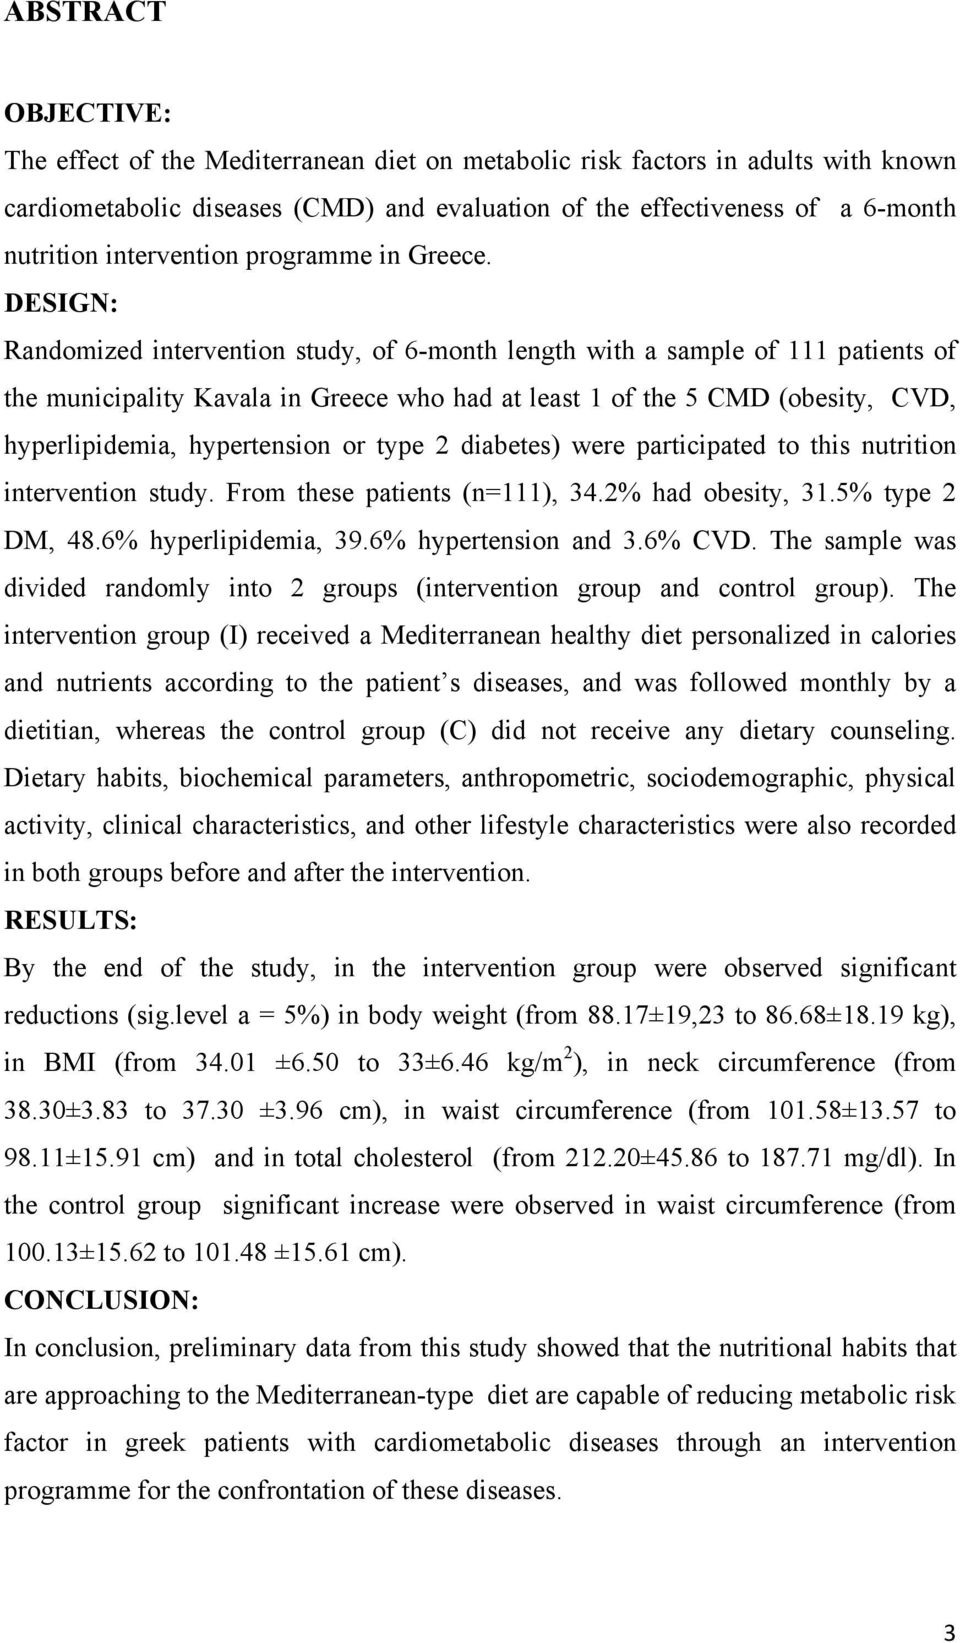 DESIGN: Randomized intervention study, of 6-month length with a sample of 111 patients of the municipality Kavala in Greece who had at least 1 of the 5 CMD (obesity, CVD, hyperlipidemia, hypertension